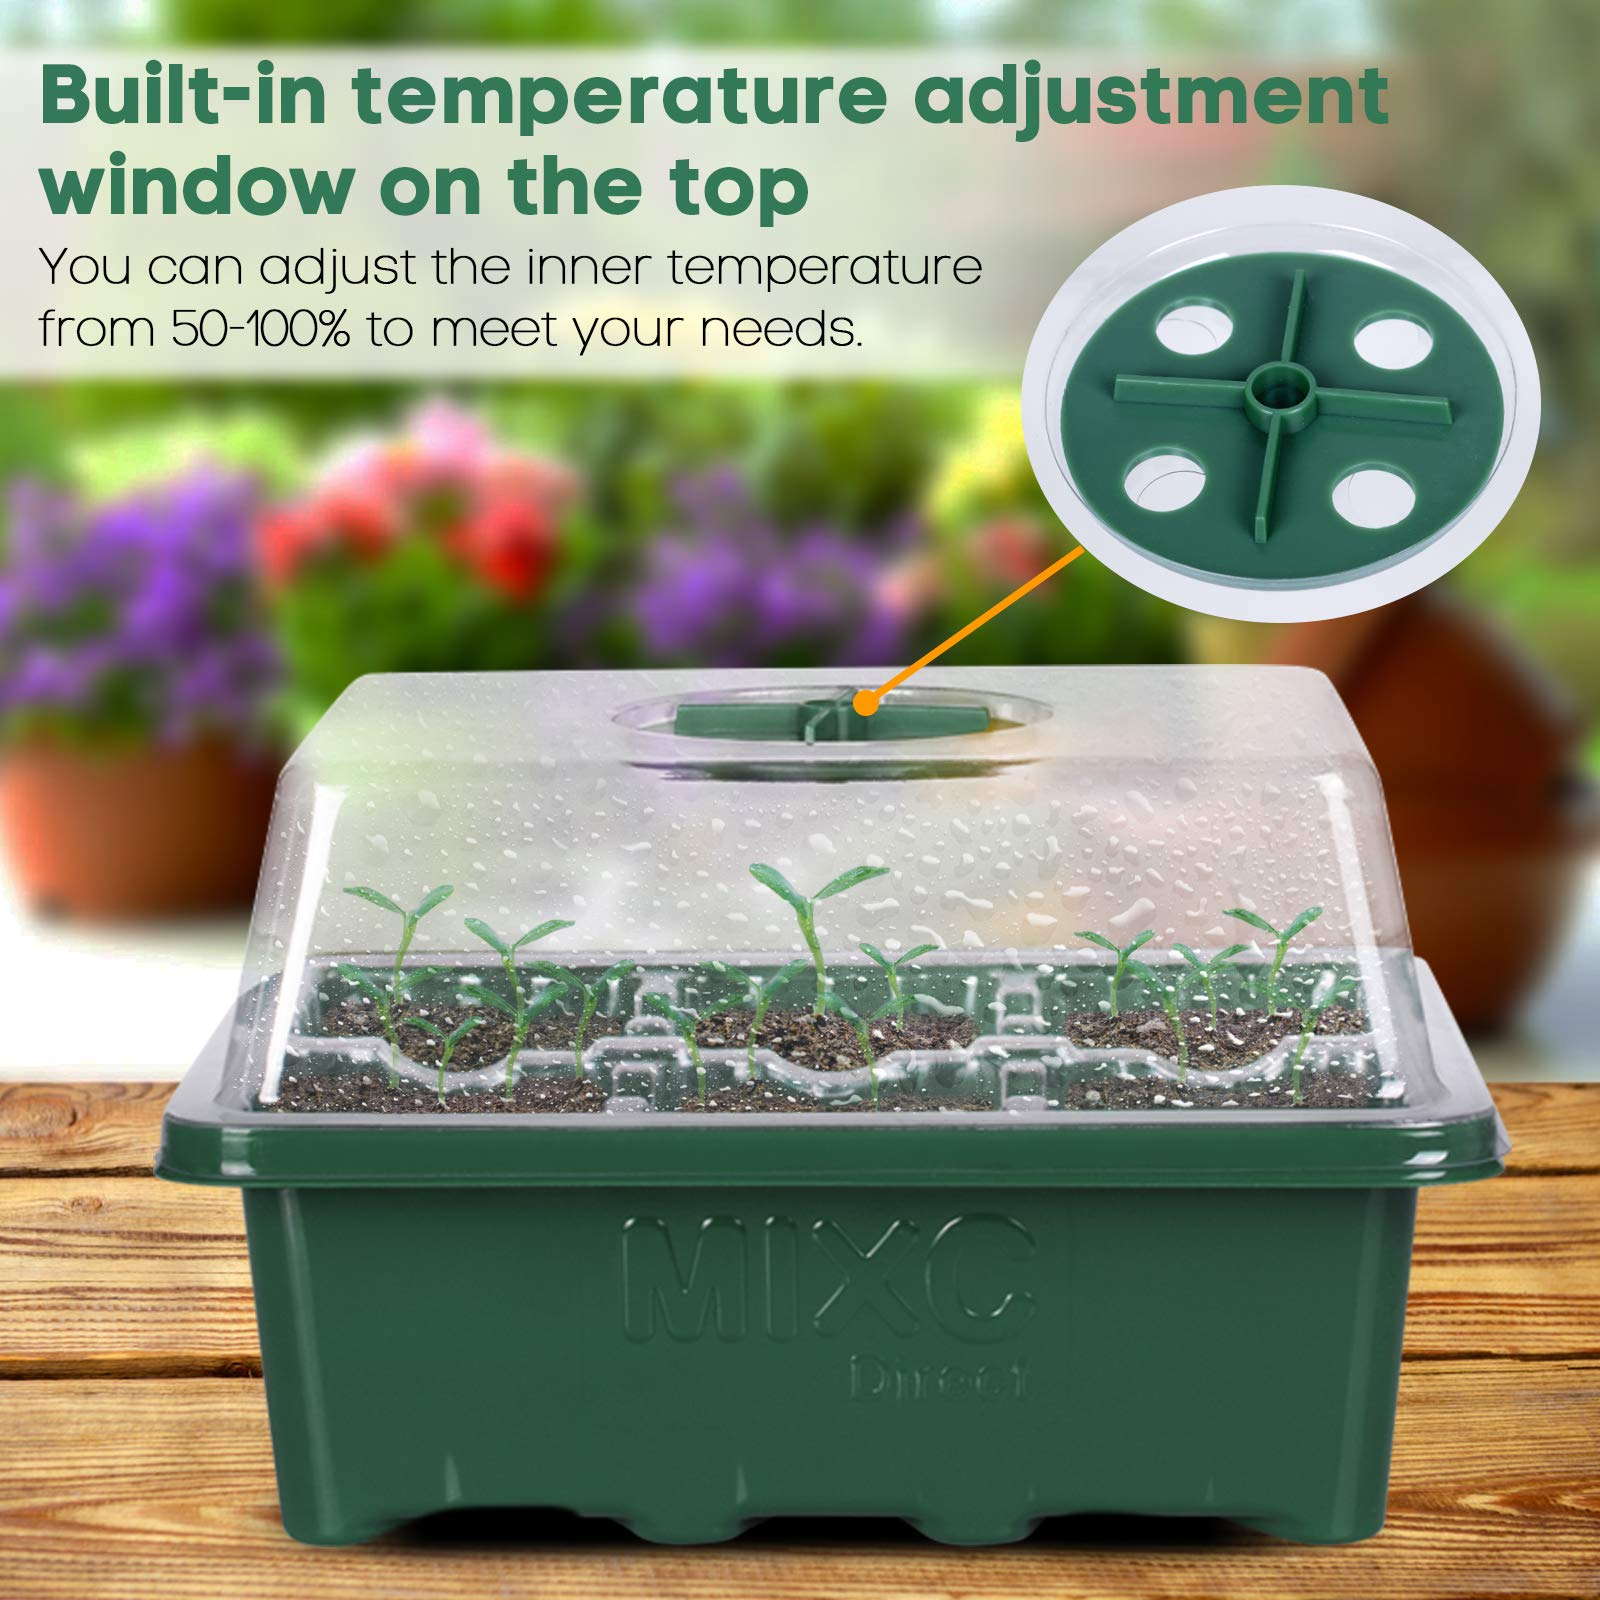 10 Set Seedling Trays Seed Starter Kit, MIXC 60 Large Cells Mini Propagator Plant Grow Kit with Humidity Vented Domes and Base for Seeds Starting Germination Greenhouse (6 Cells per Tray)